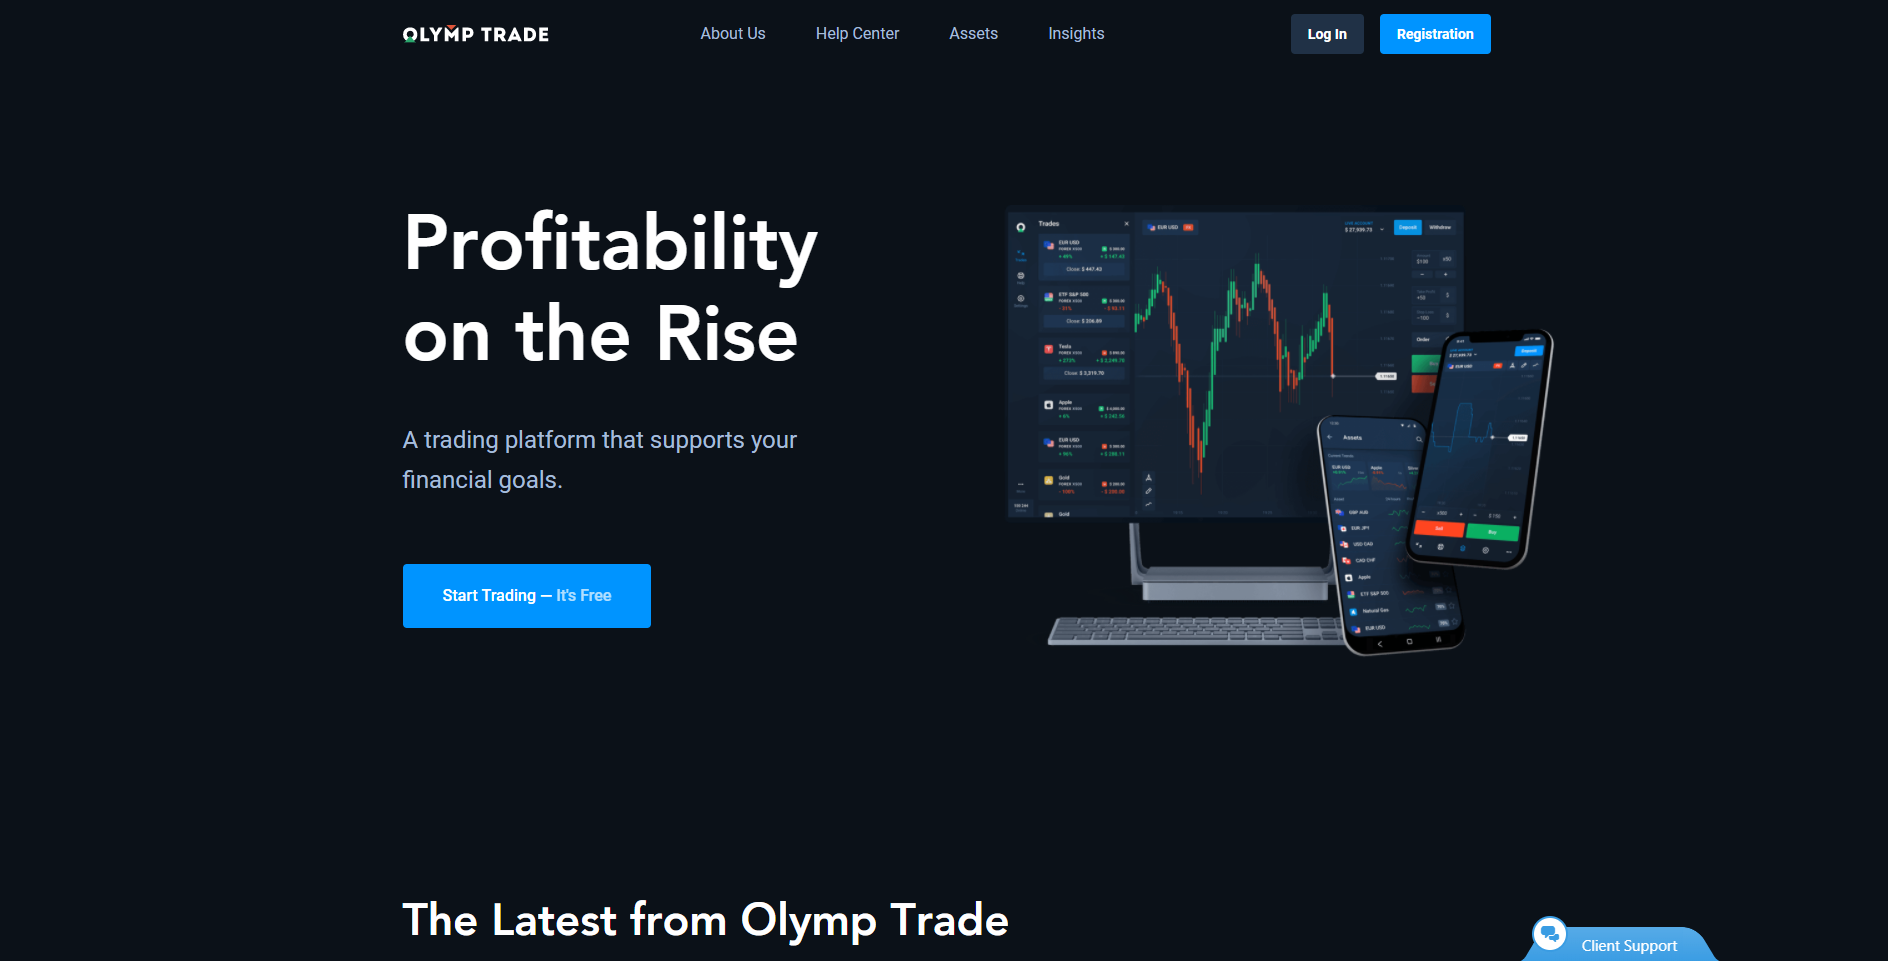 Official website of Olymp Trade